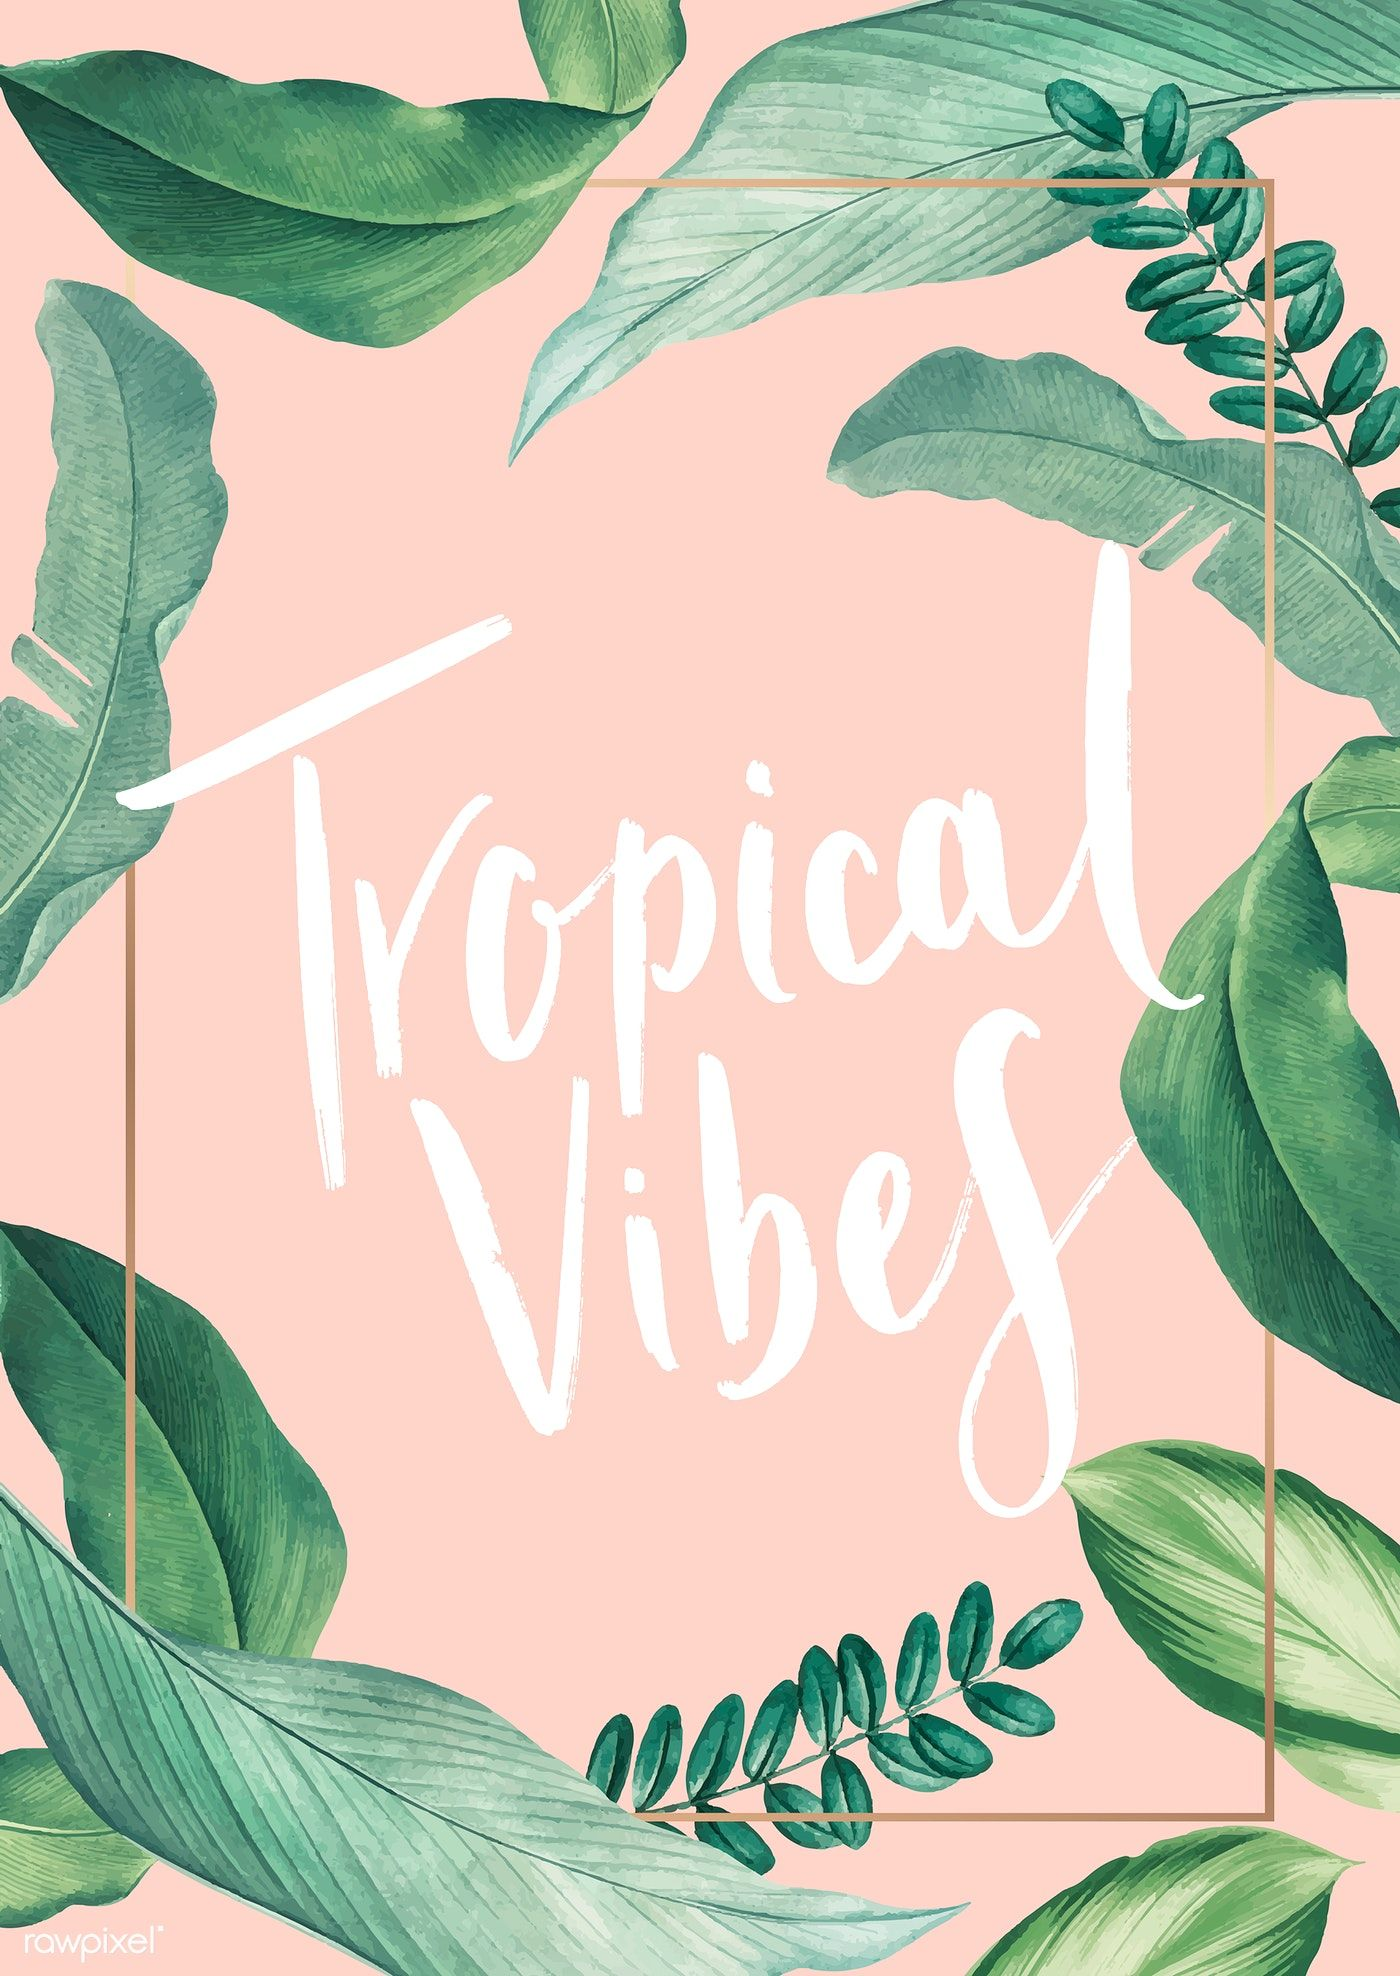 Hand Drawn Tropical Vibes Pastel Pink Poster Vector Premium Image By Rawpixel Com Pink Posters Pastel Poster Tropical Poster